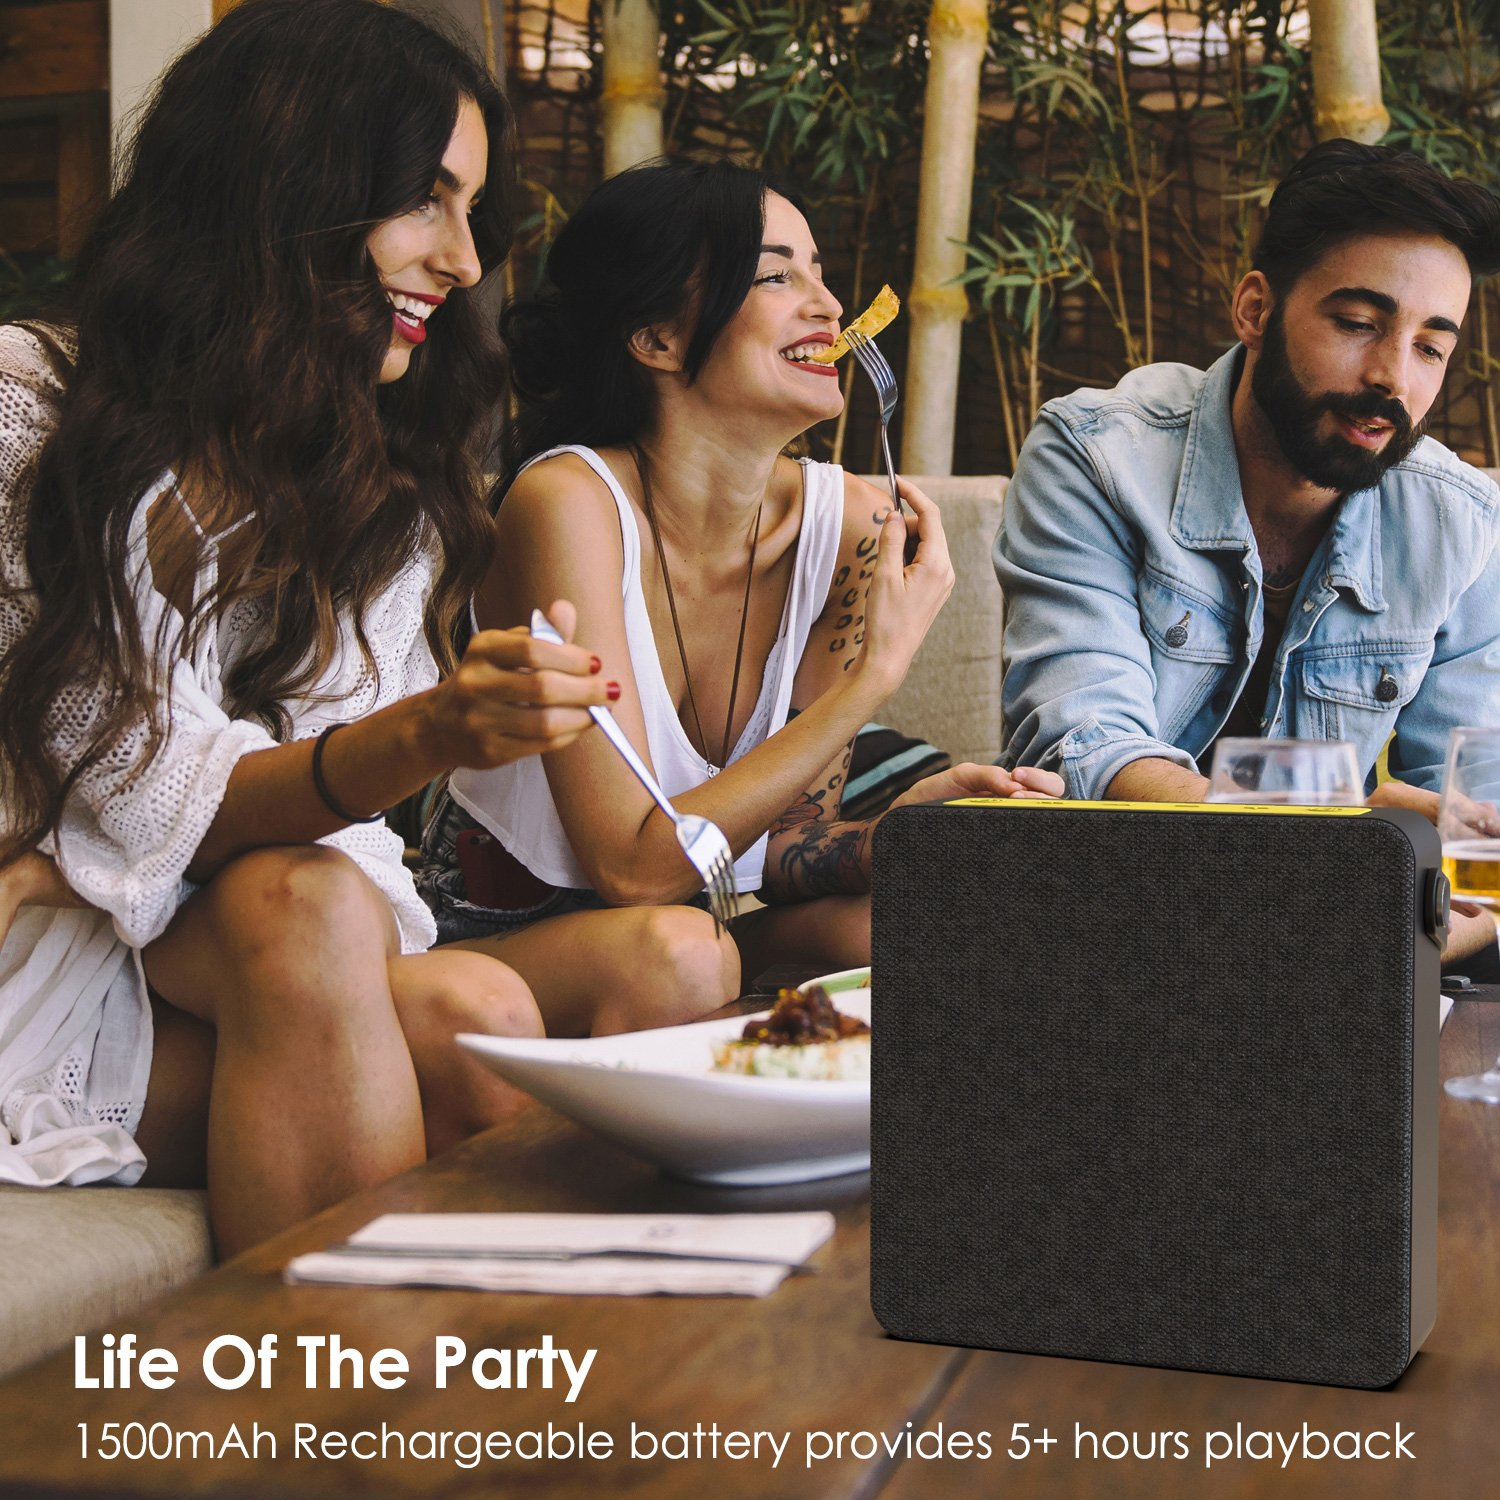 PUNKBOX Portable Wireless Bluetooth Speaker, Loud & Powerful Dual HD Speakers W/ Enhanced Bass, AUX Input, Rechargeable Hands Free Speakerphone W/ Noise Cancellation Mic for iPhone/Android [black]